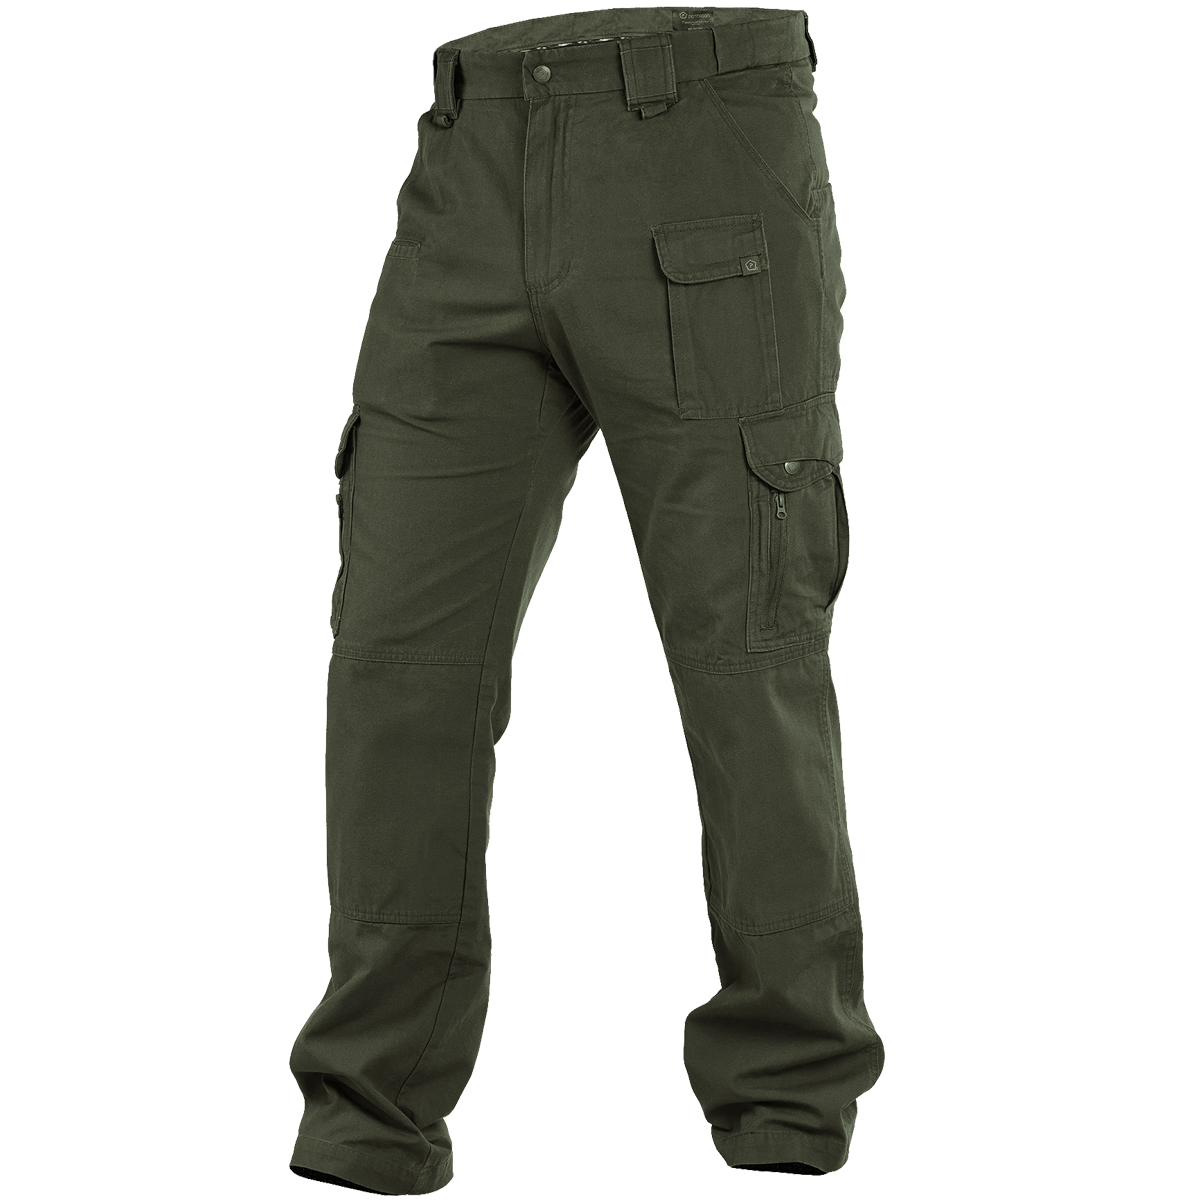 pentagon elgon heavy duty tactical pants mens hunting